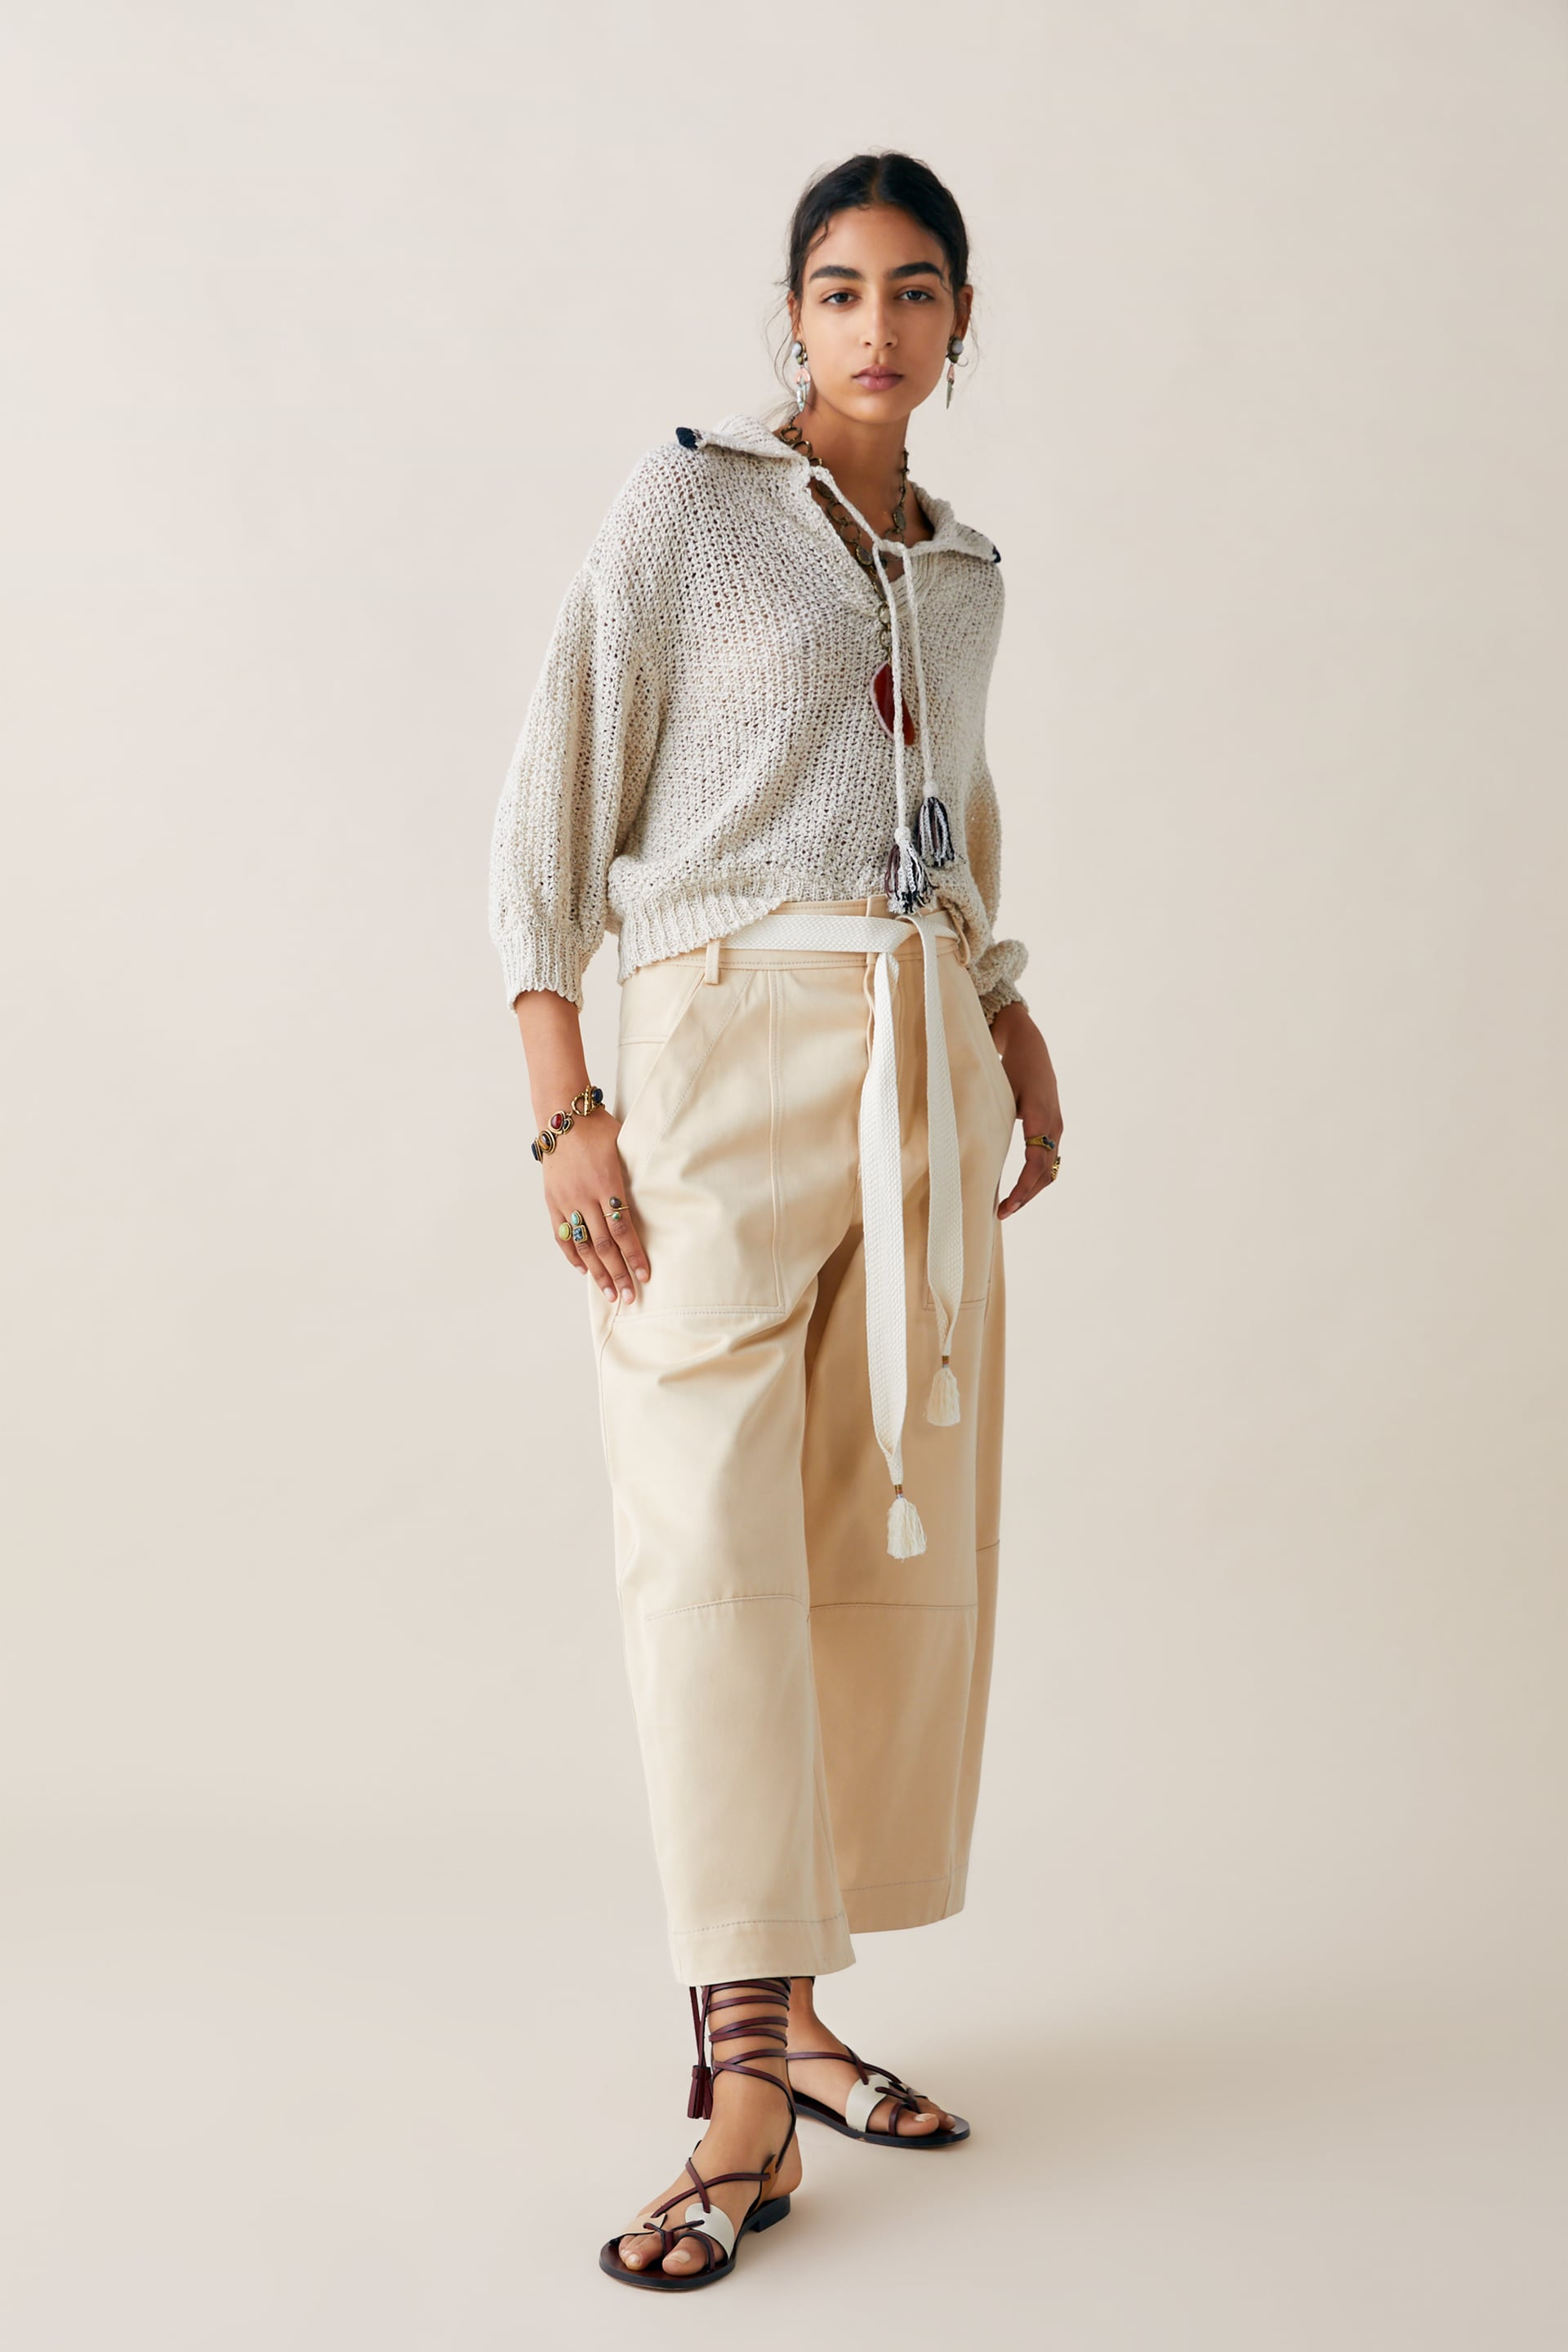 2832ee9a Image 1 of LIMITED EDITION ZARA STUDIO SWEATER WITH CONTRAST TOPSTITCHING  from Zara